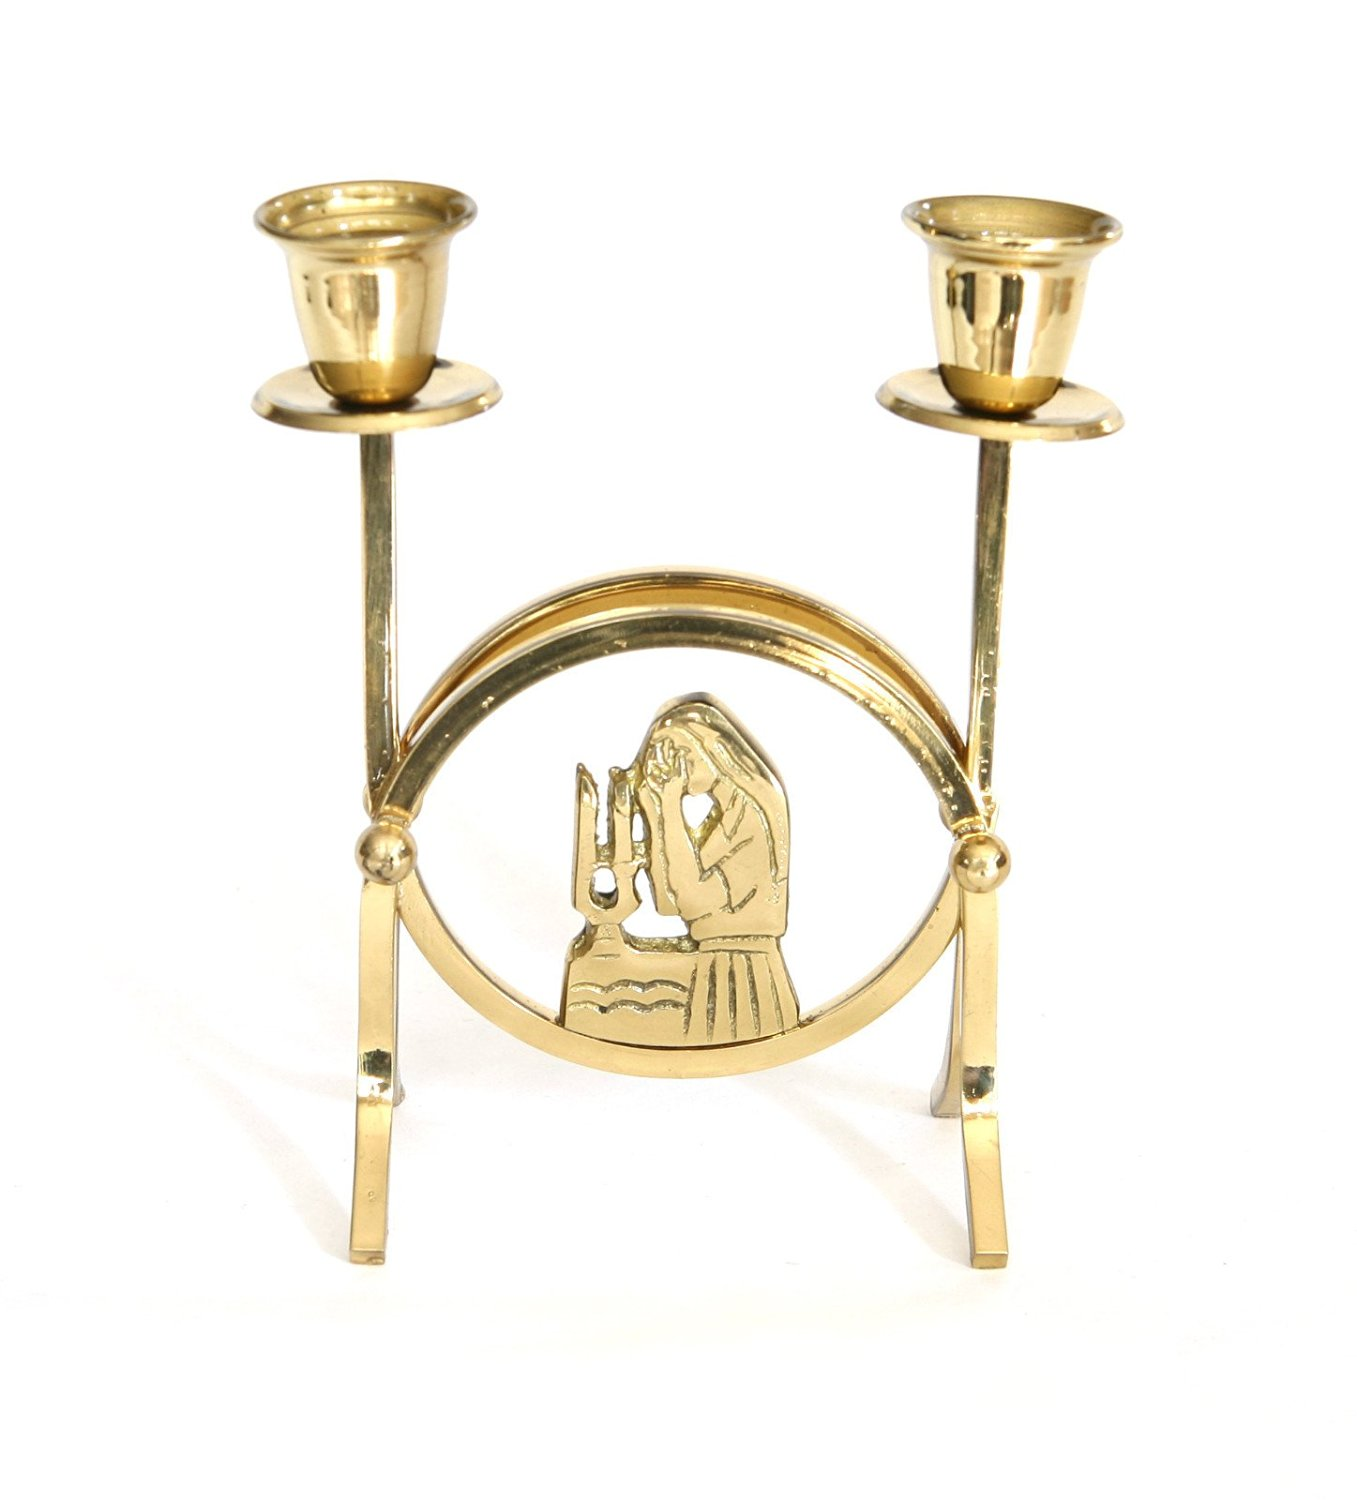 """Jewish Shabbat Sabbat Solid Brass Candle Holders / Sticks A Woman is Blessing For Shabbat 5.5"""" x 3.5"""", Great Gift For: shabbat and Jewish Hollydays"""